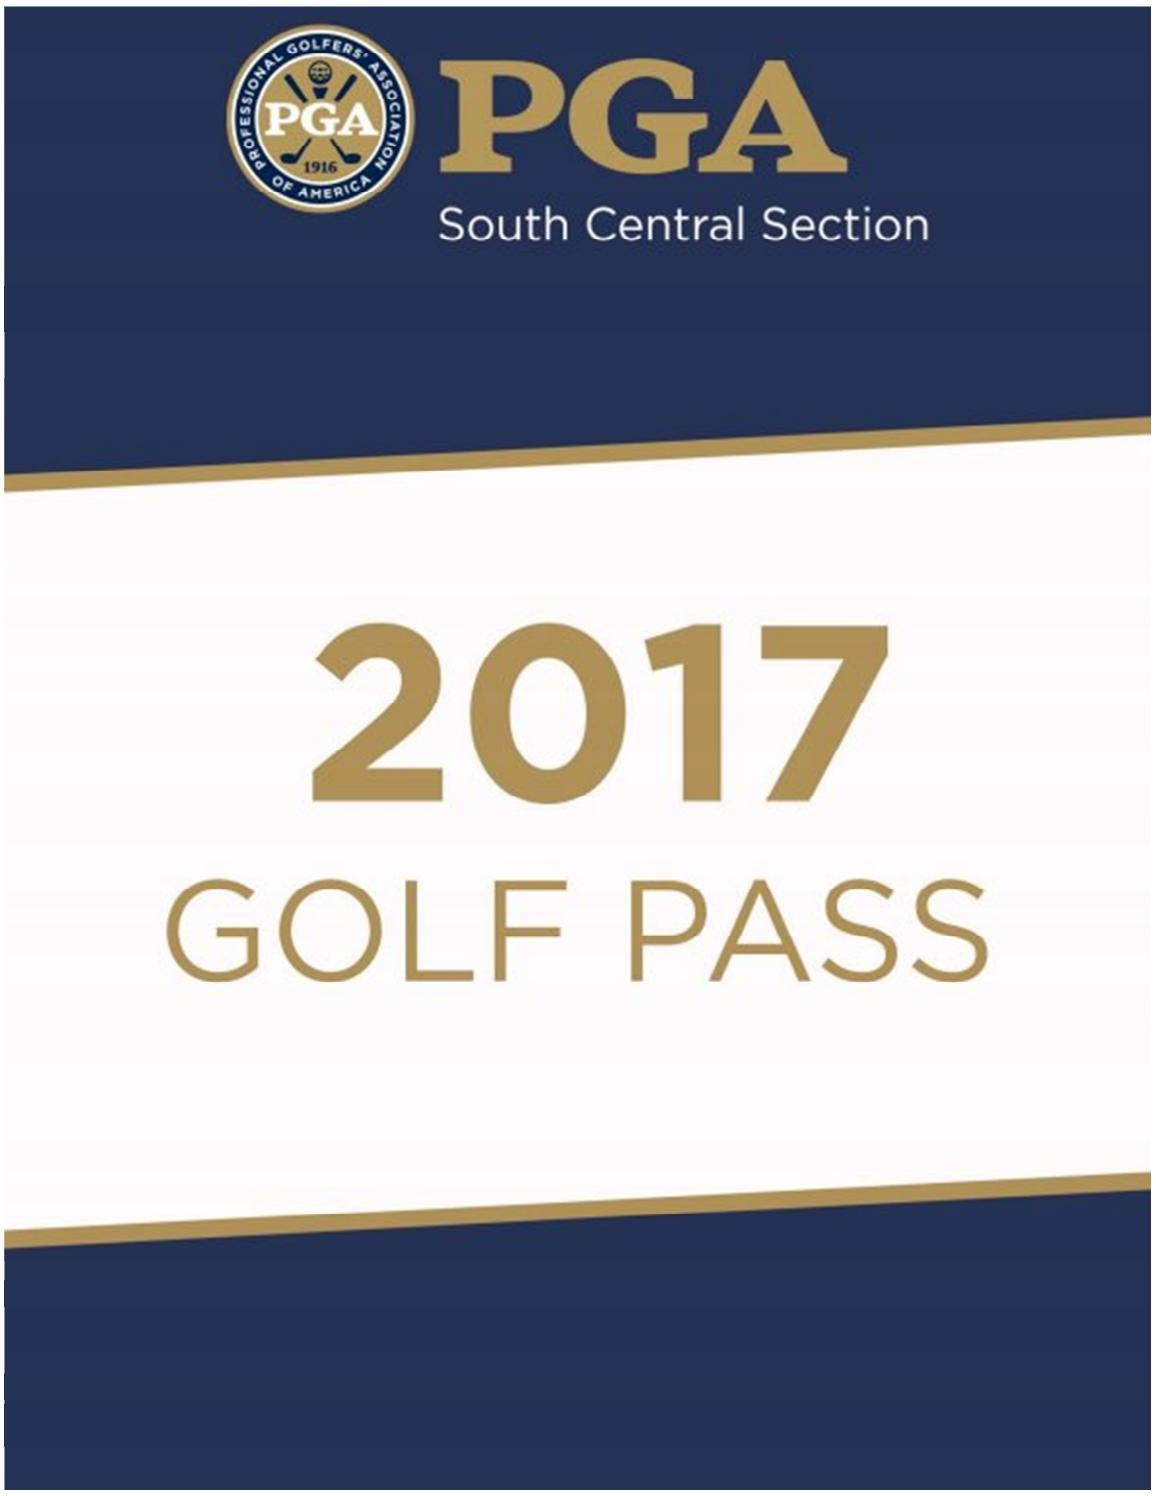 2017 GolfPass by South Central PGA - Issuu